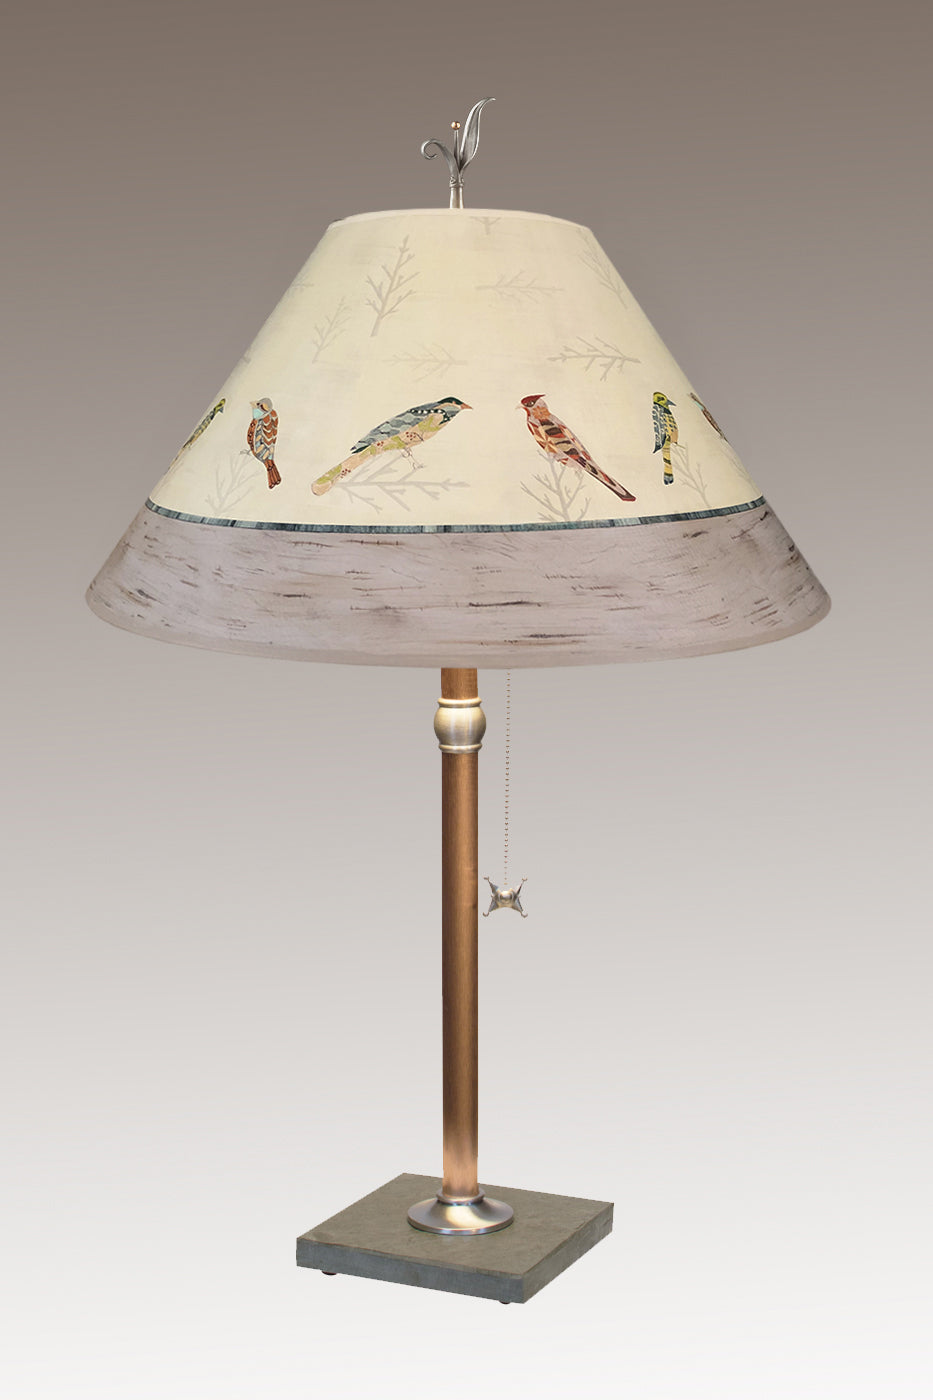 Copper Table Lamp on Vermont Slate with Large Conical Shade in Bird Friends